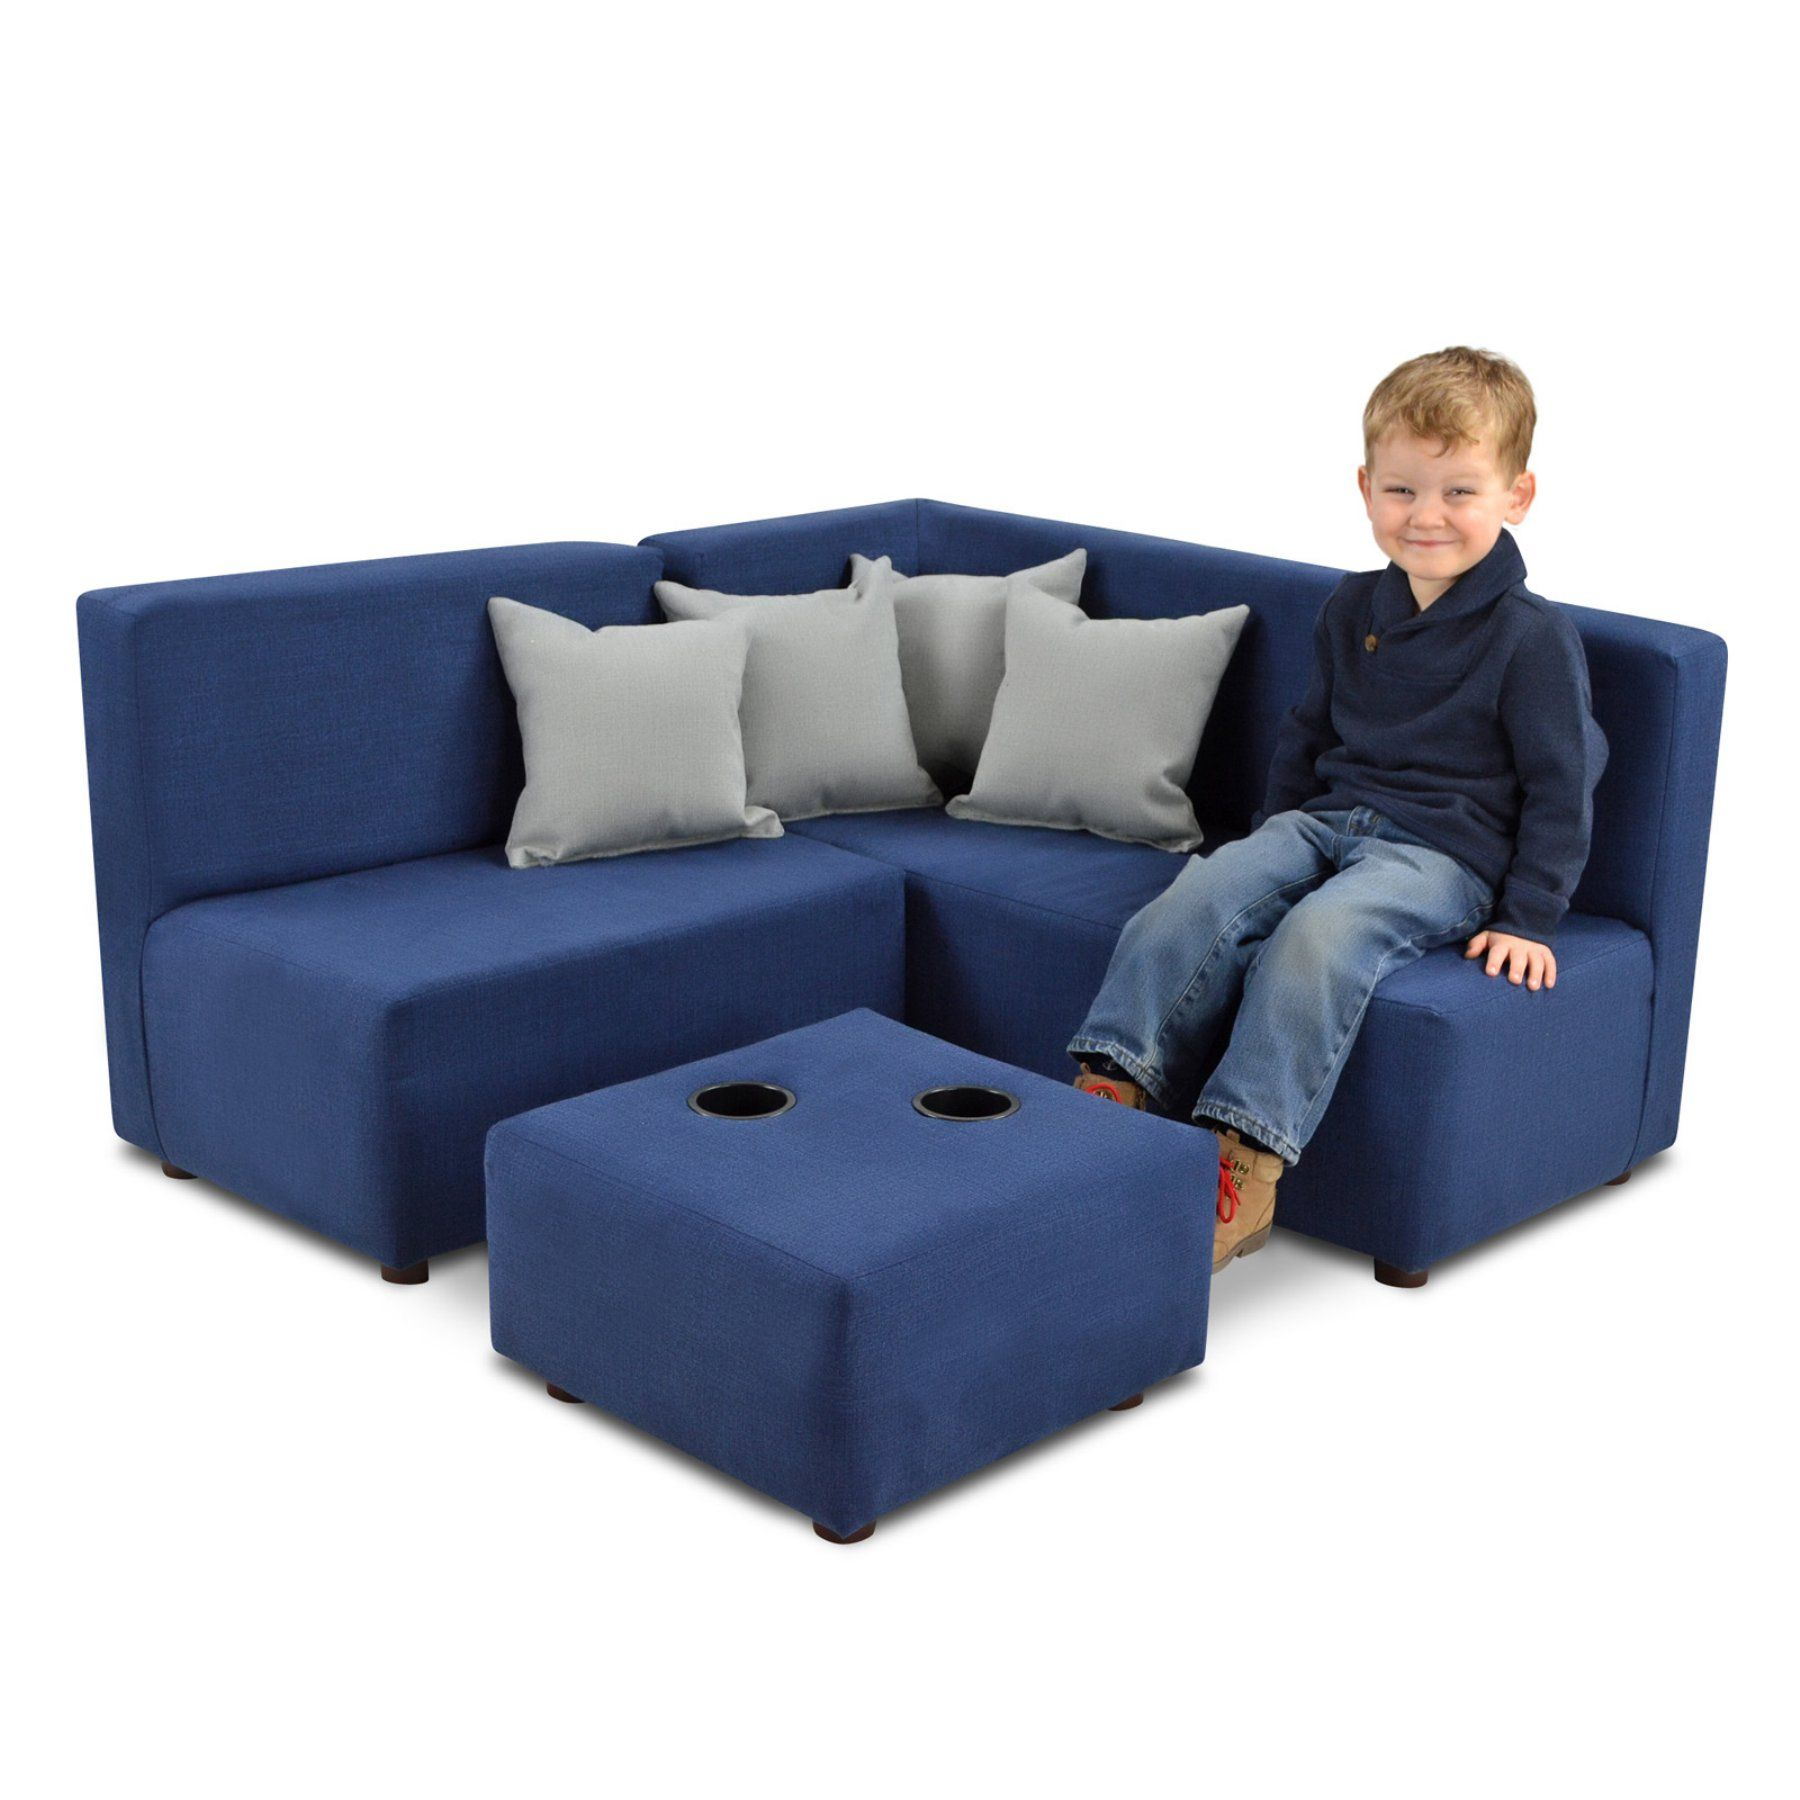 Best Kangaroo Trading Kids 7 Piece Upholstered Sectional Sofa 400 x 300